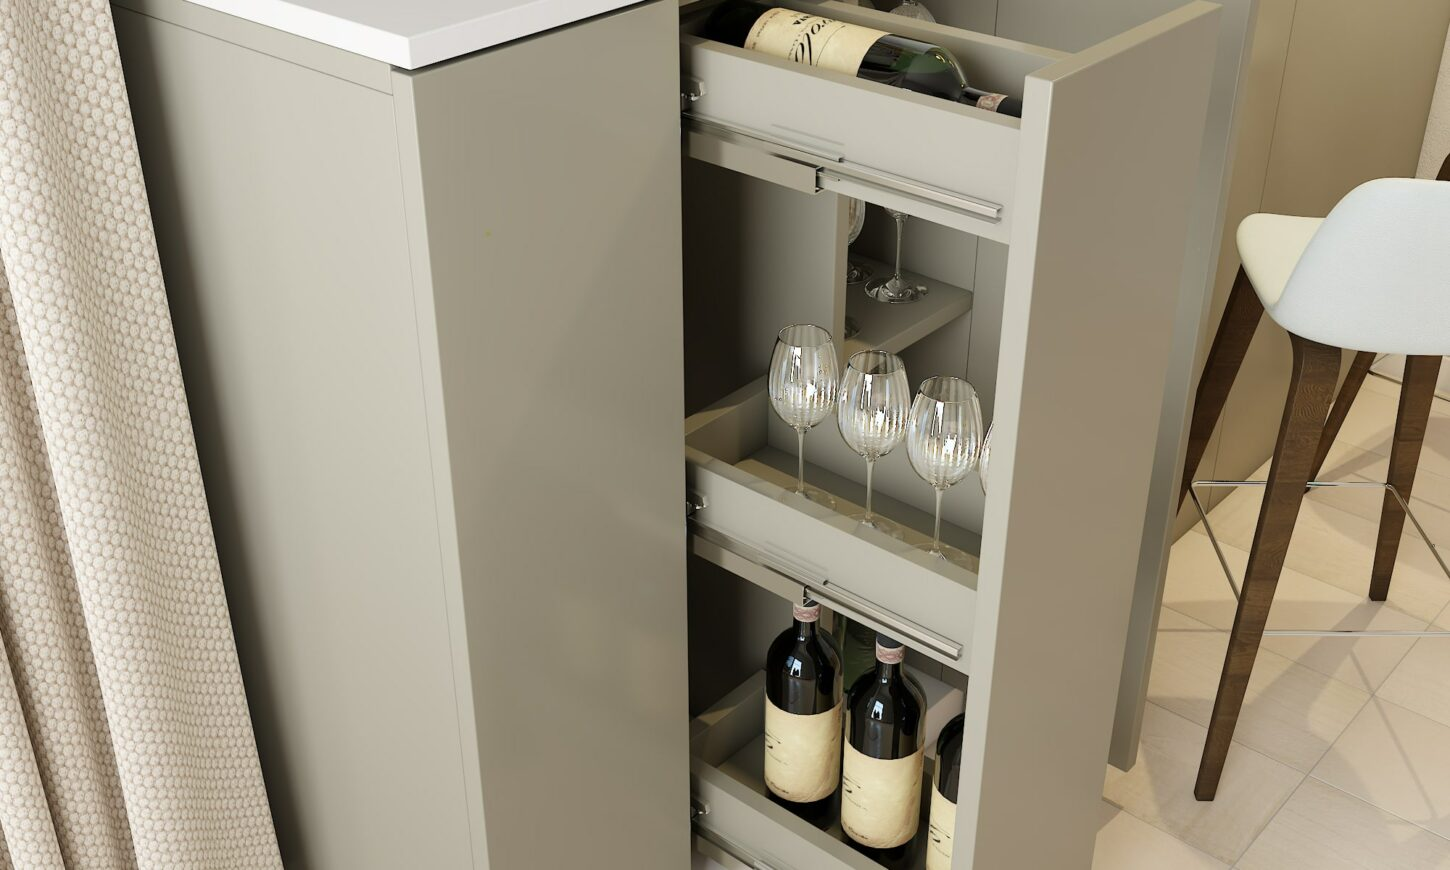 Modern minimal style dining room design mini bar bottle pull out cabinet and crockery units.